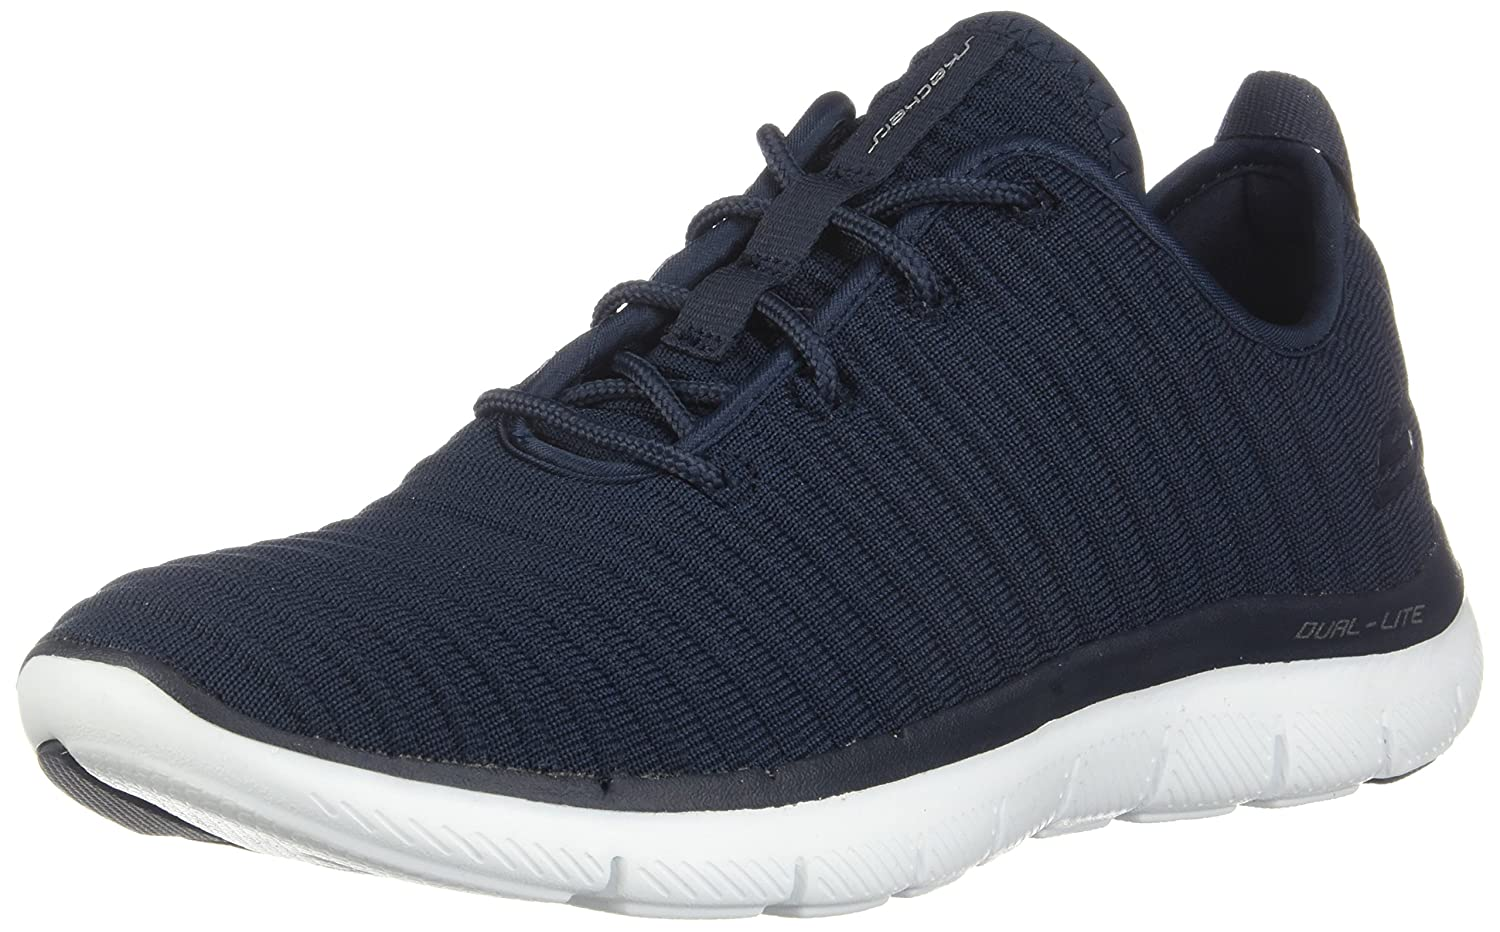 Skechers Damen Sneaker Flex Appeal 2.0 Estates Schwarz  5.5 B(M) US|Blau(navy)